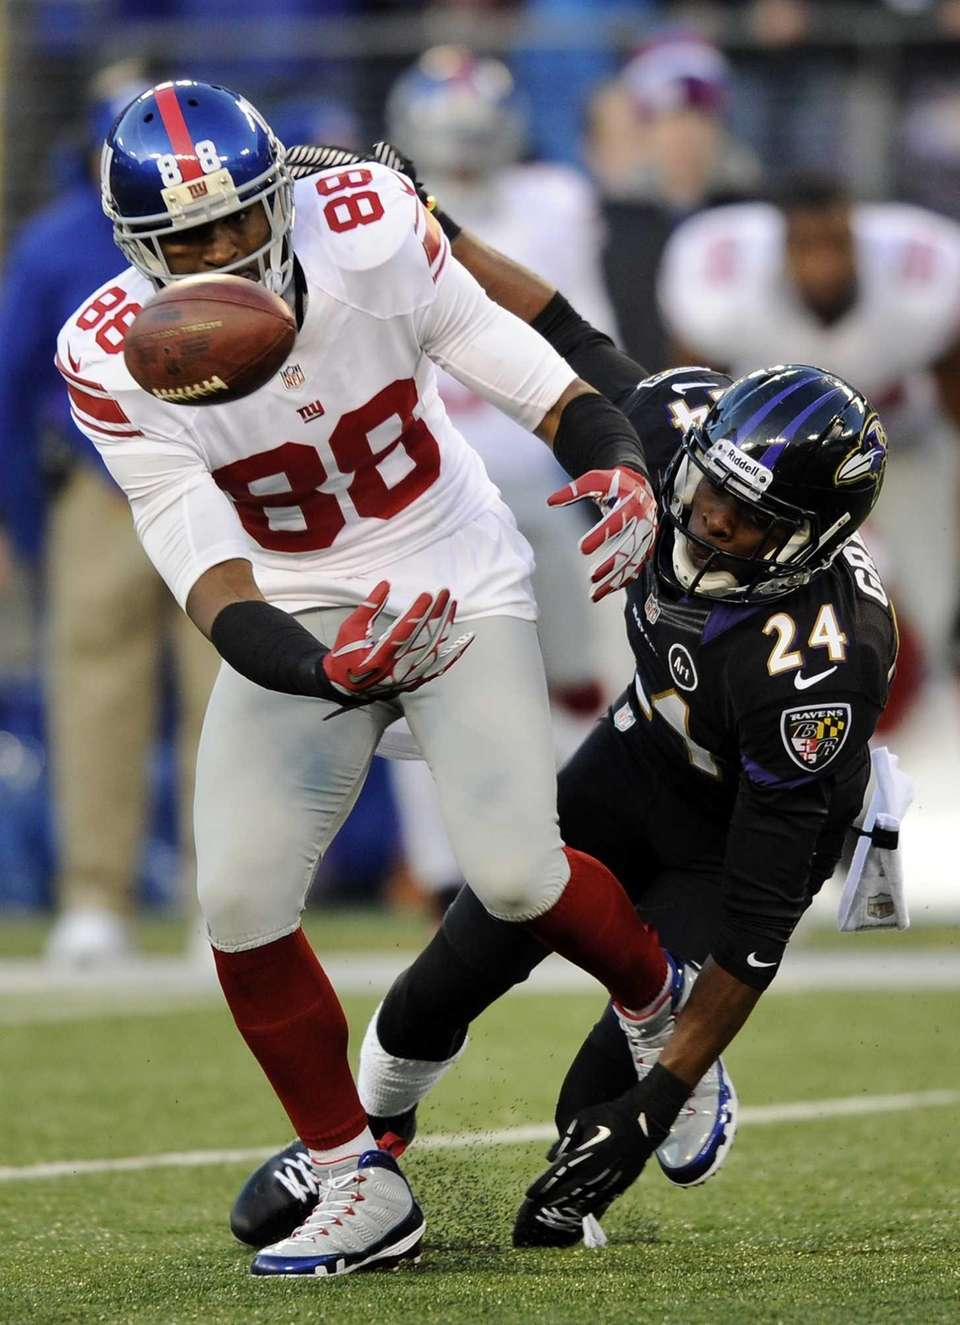 Baltimore Ravens cornerback Corey Graham, back, breaks up